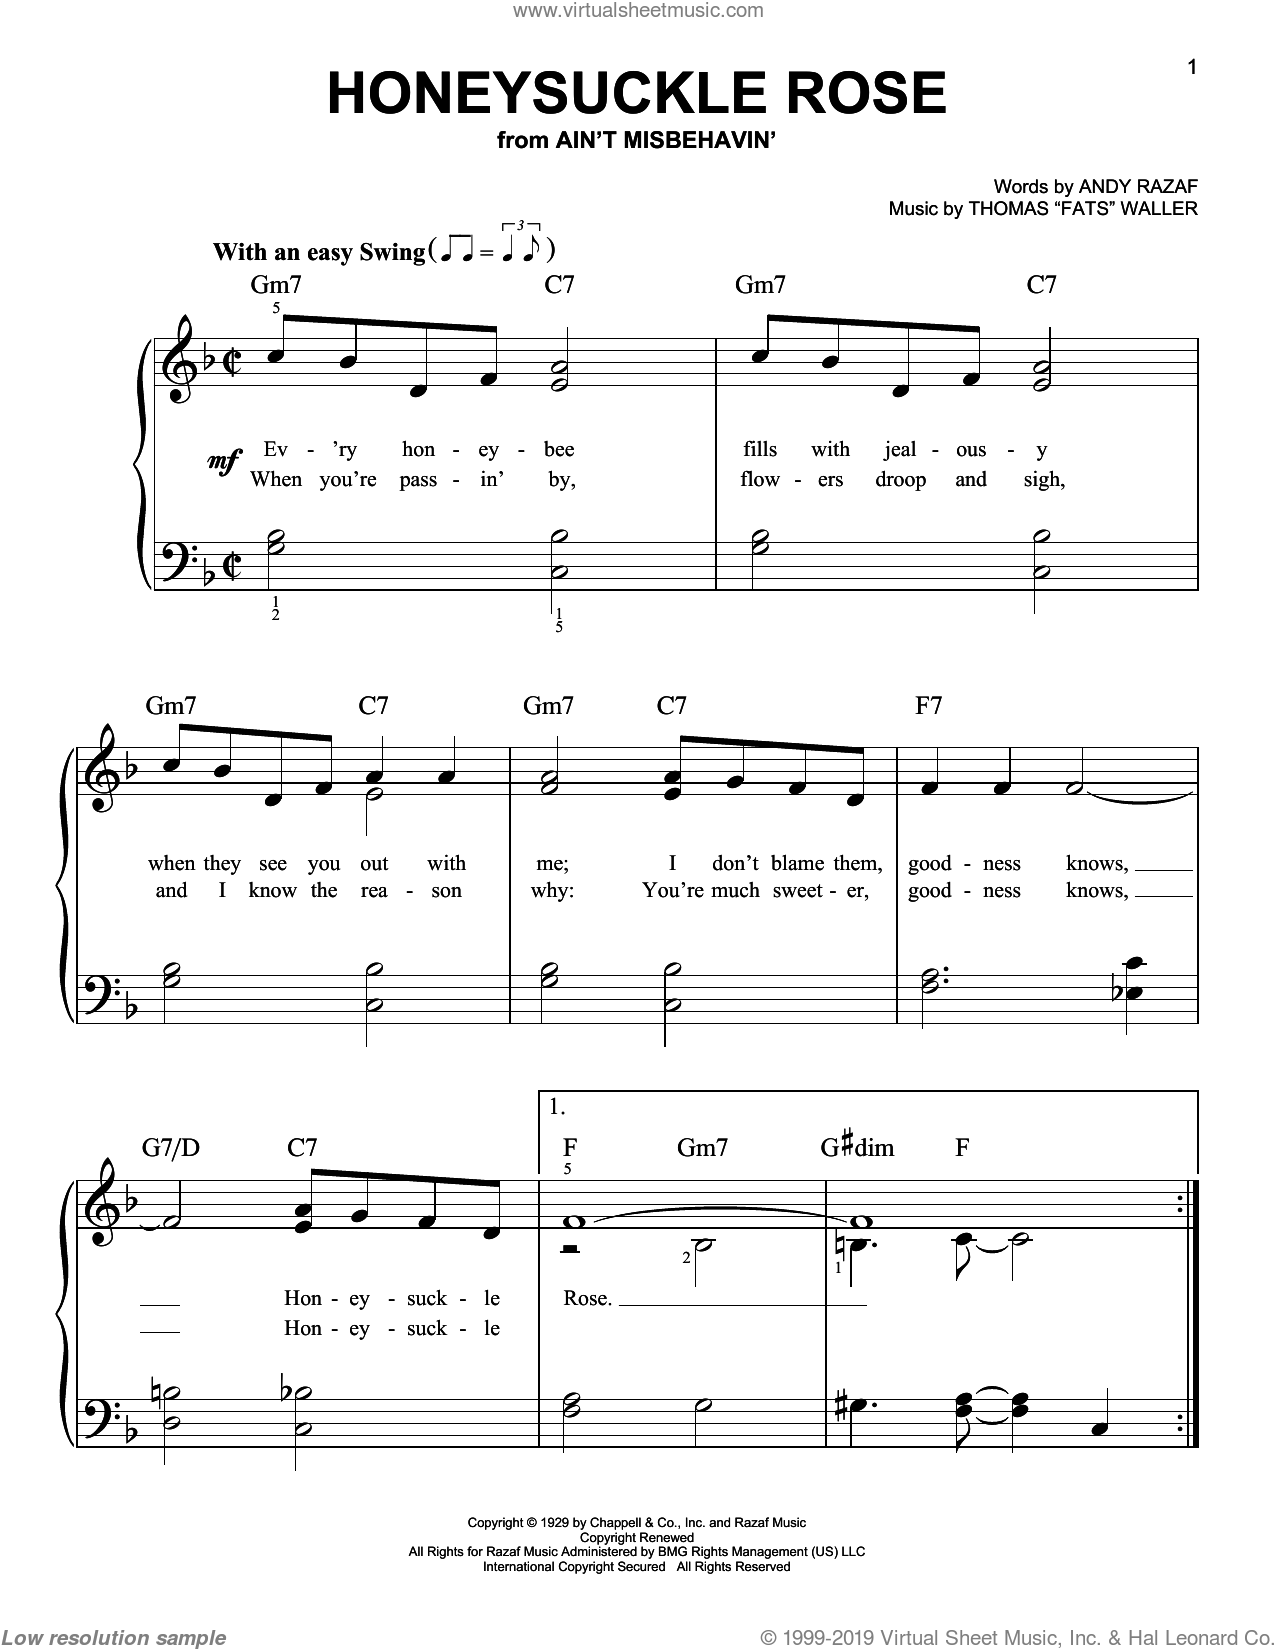 Honeysuckle Rose sheet music for piano solo by Louis Armstrong, Benny Goodman, Django Reinhardt, Duke Ellington, Nat King Cole, Sarah Vaughan, Teddy Wilson, Willie Nelson, Andy Razaf and Thomas Waller, easy skill level